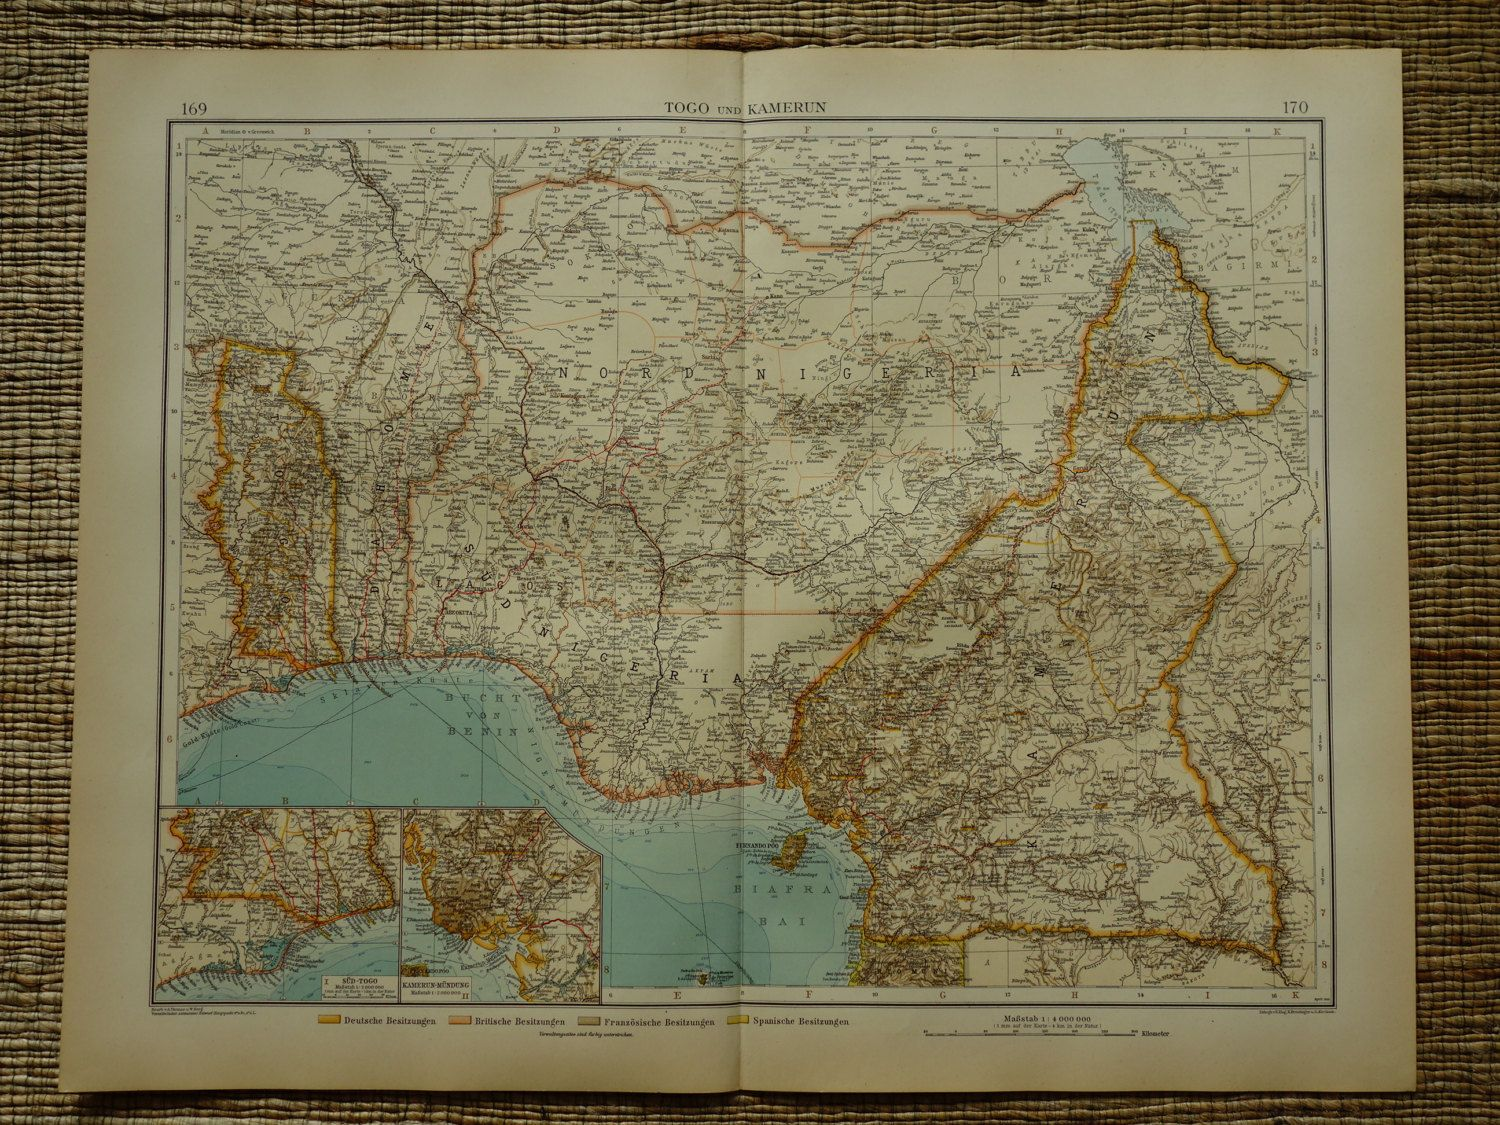 1910 Antique large colonial map of Togo